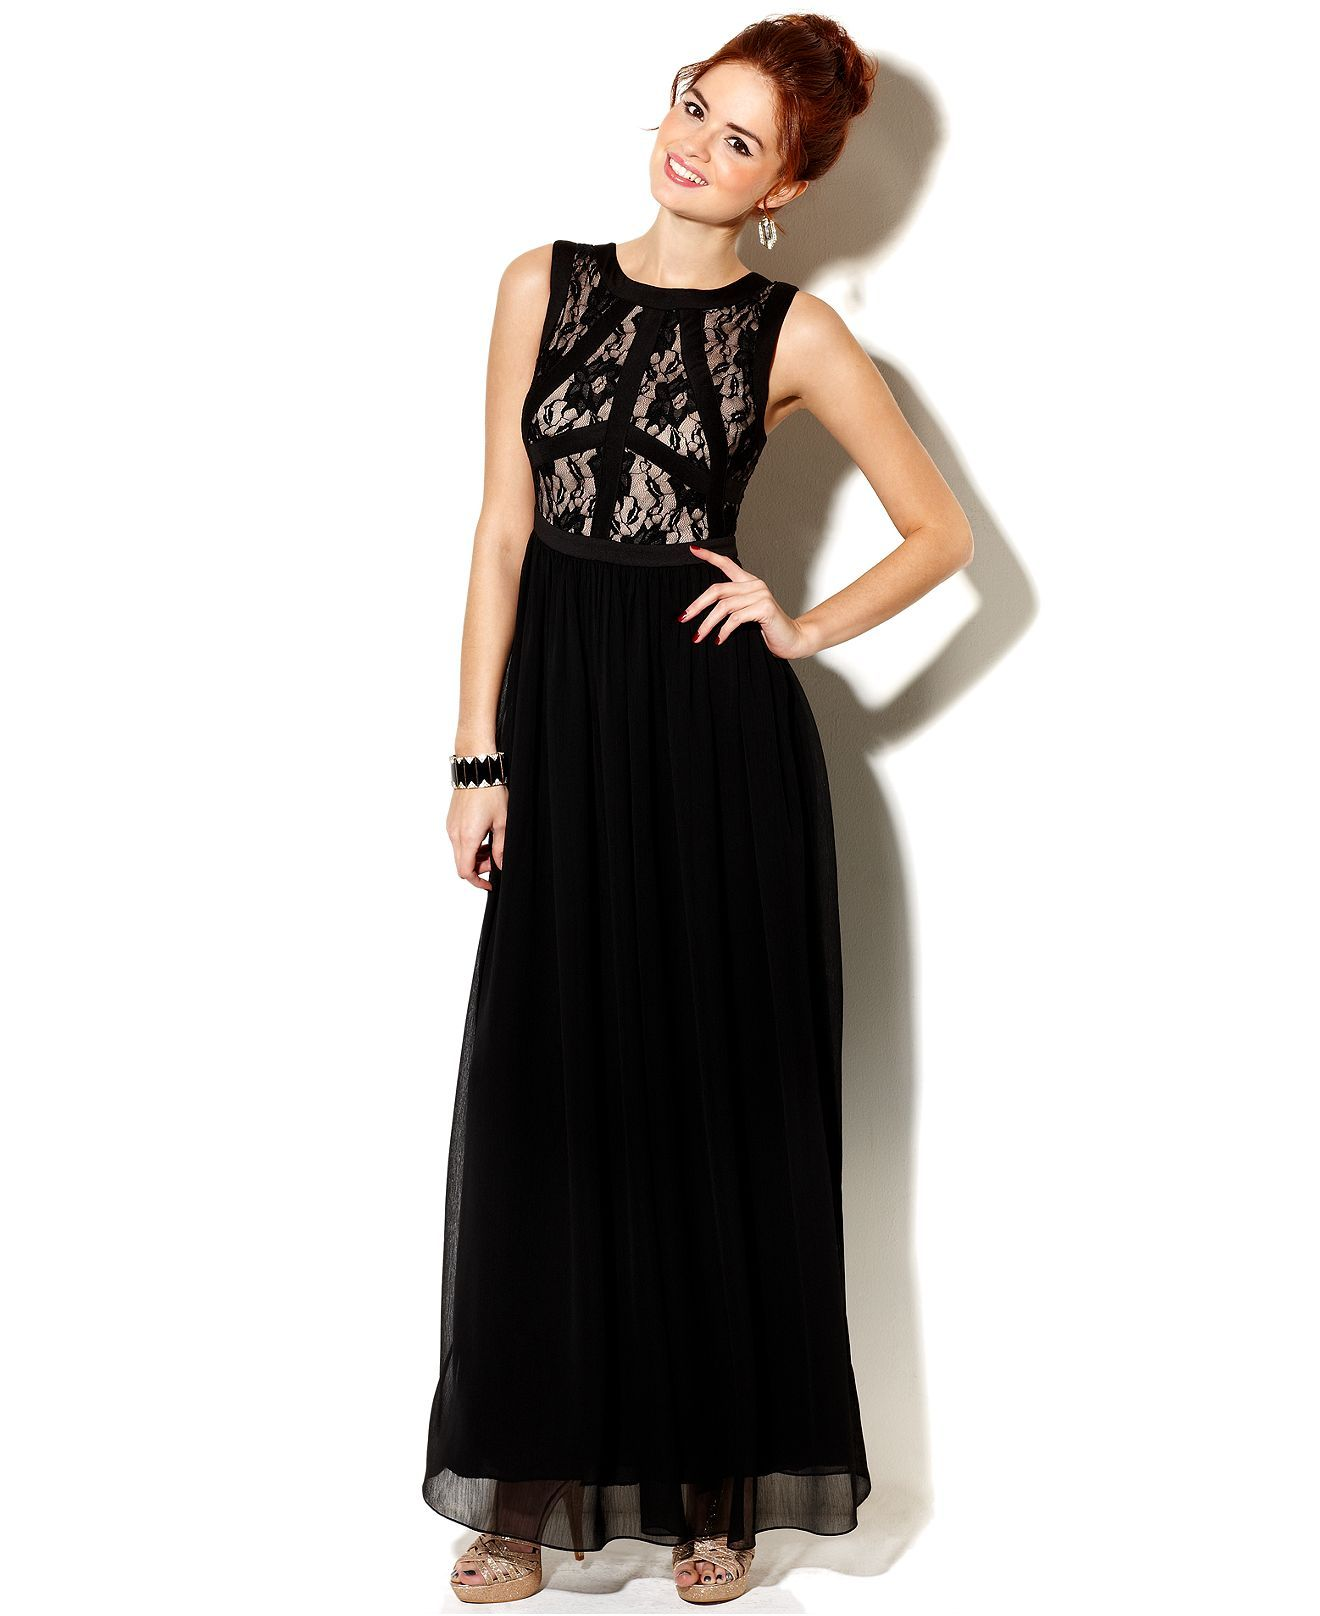 Rampage juniors dress sleeveless lace gown topshoppromqueen a